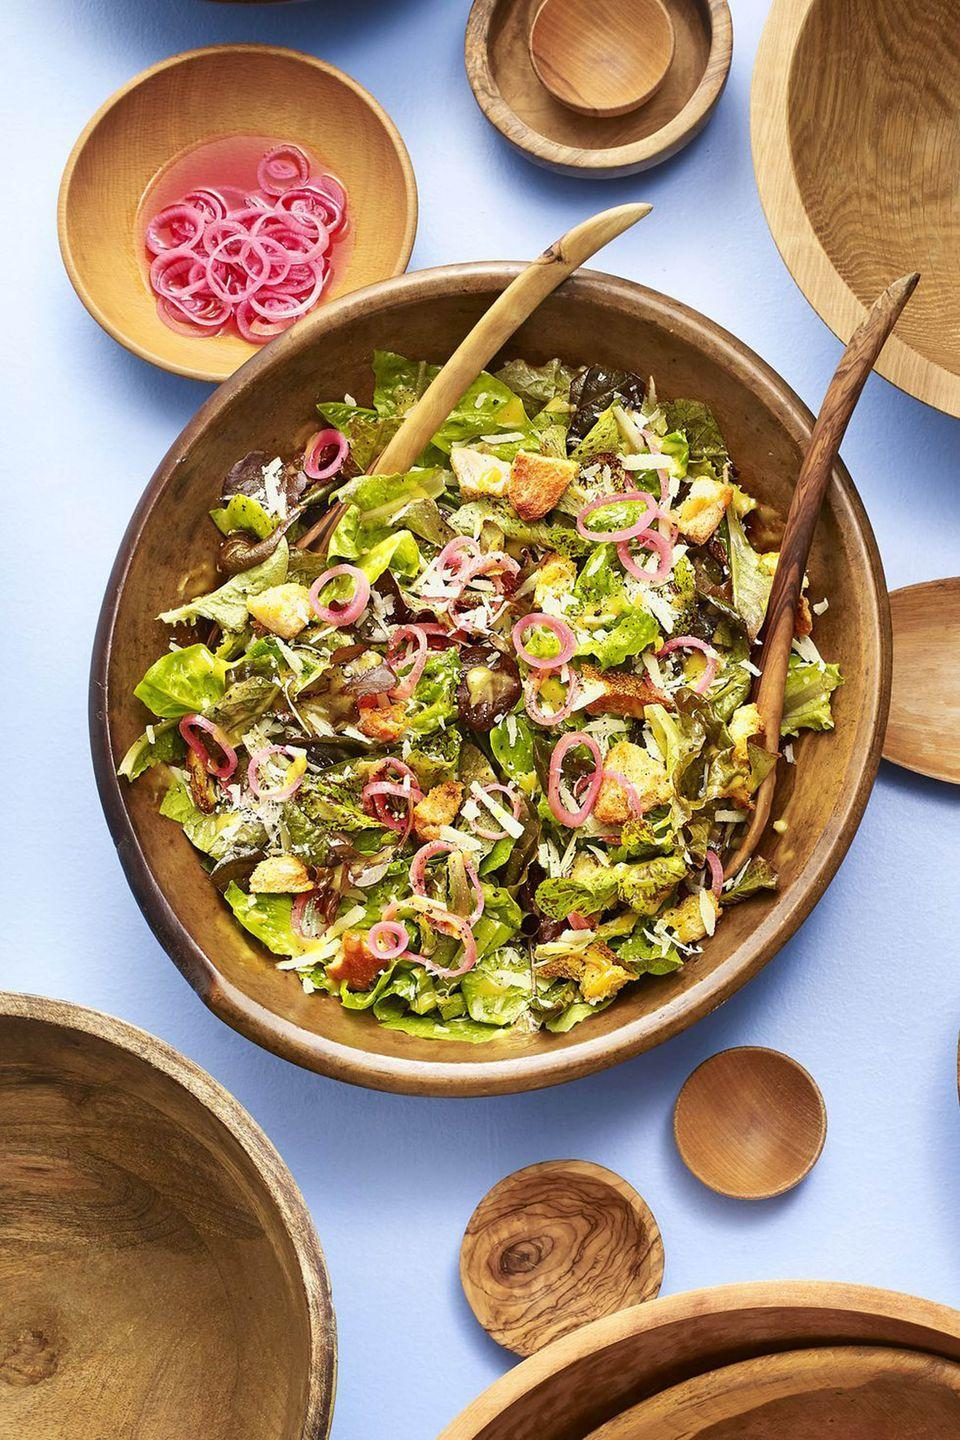 """<p>Upgrade Caesar salad with pickled shallots and homemade croutons.</p><p><strong><a href=""""https://www.countryliving.com/food-drinks/a19705324/spring-greens-caesar-salad-with-pickled-shallot-recipe/"""" rel=""""nofollow noopener"""" target=""""_blank"""" data-ylk=""""slk:Get the recipe"""" class=""""link rapid-noclick-resp"""">Get the recipe</a>.</strong></p><p><a class=""""link rapid-noclick-resp"""" href=""""https://www.amazon.com/Aidea-Acacia-Wooden-Salad-Bowl/dp/B076HN9Z8Z?tag=syn-yahoo-20&ascsubtag=%5Bartid%7C10050.g.3290%5Bsrc%7Cyahoo-us"""" rel=""""nofollow noopener"""" target=""""_blank"""" data-ylk=""""slk:SHOP SALAD BOWLS"""">SHOP SALAD BOWLS</a> </p>"""